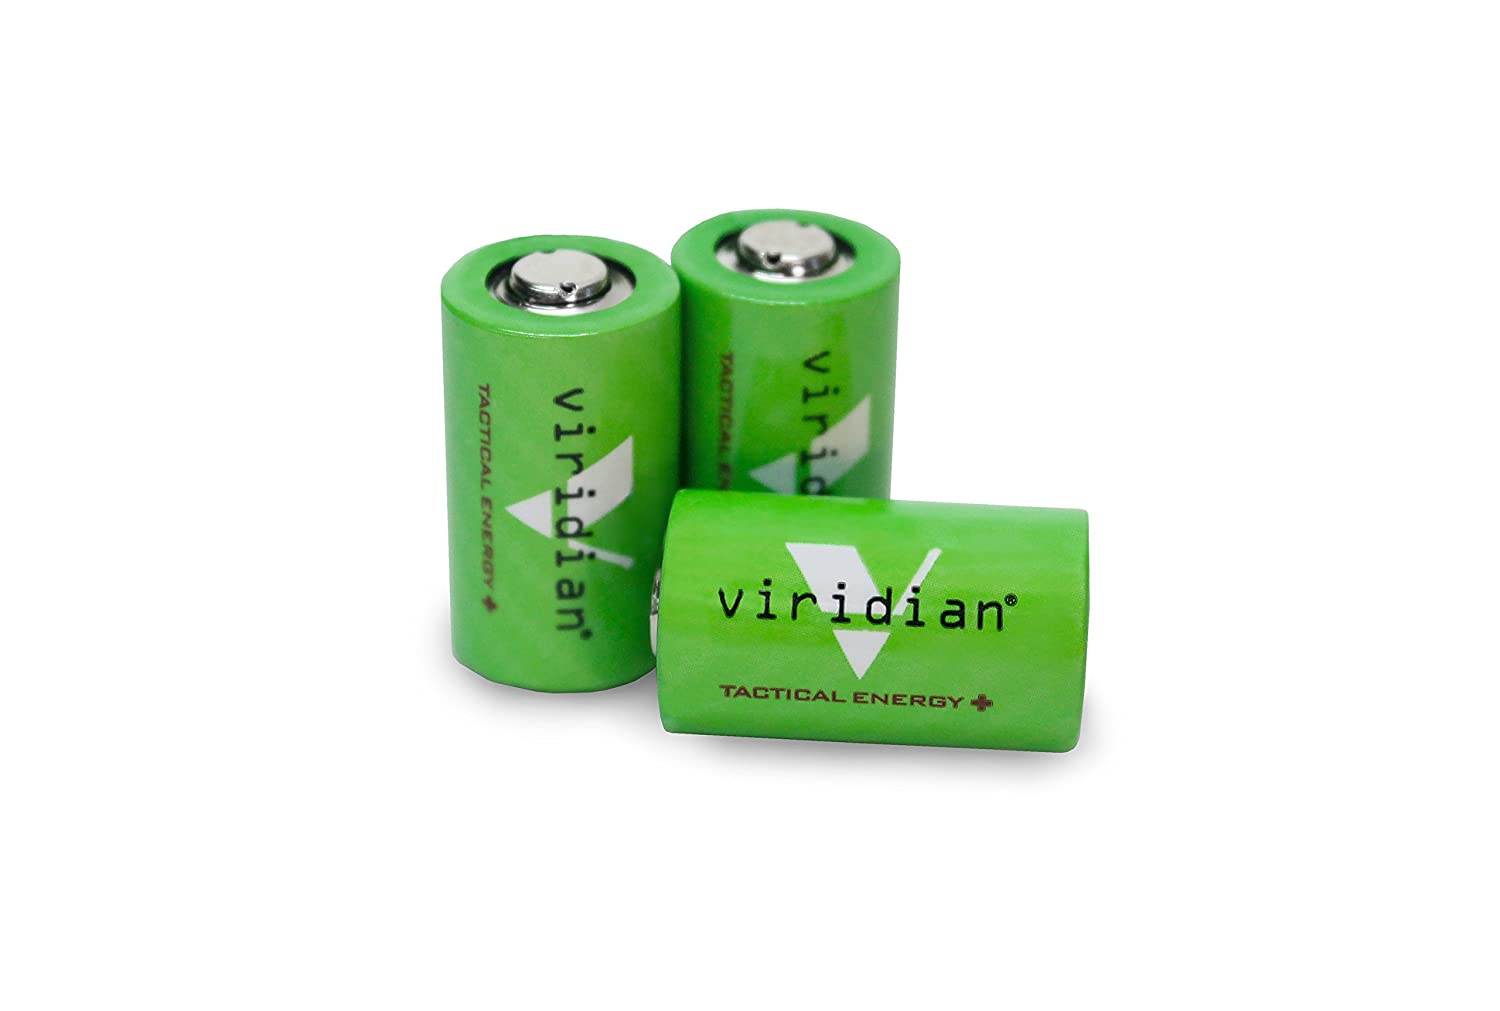 Viridian Tactical Energy CR2 Photo Lithium Battery Replacement